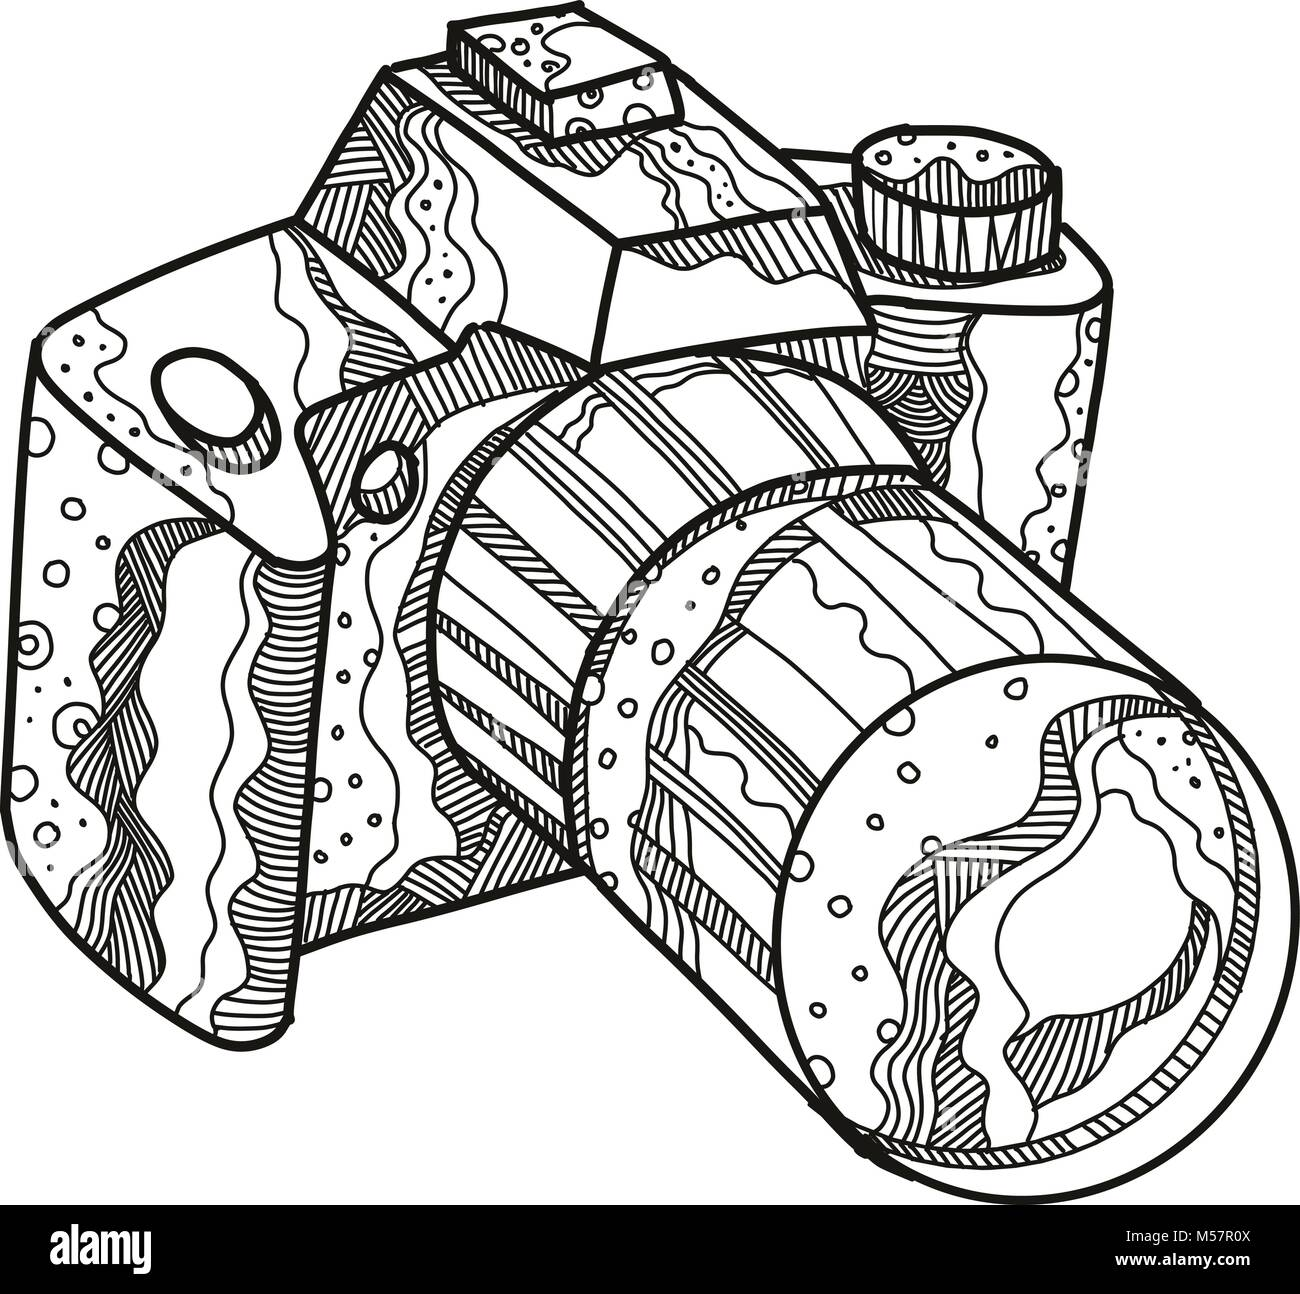 Doodle art illustration of a DSLR camera, digital SLR or digital single-lens reflex camera done in mandala style. - Stock Vector